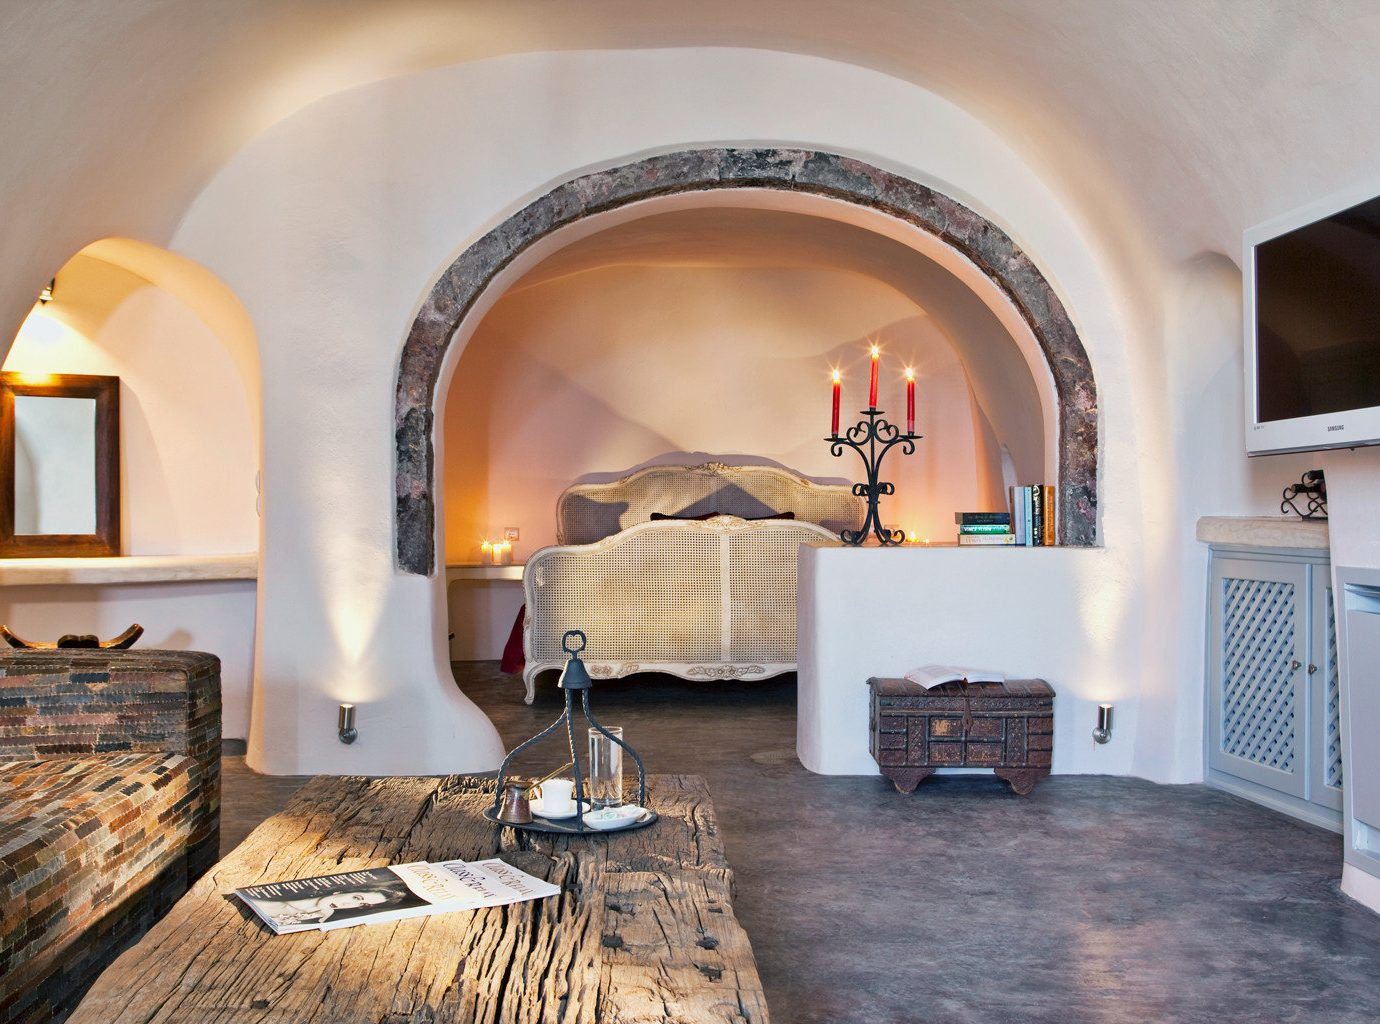 Bedroom Classic Elegant Hotels Island Rustic Suite Trip Ideas indoor wall Living room floor property living room estate Fireplace furniture home hearth interior design cottage Villa real estate farmhouse arch stone wood